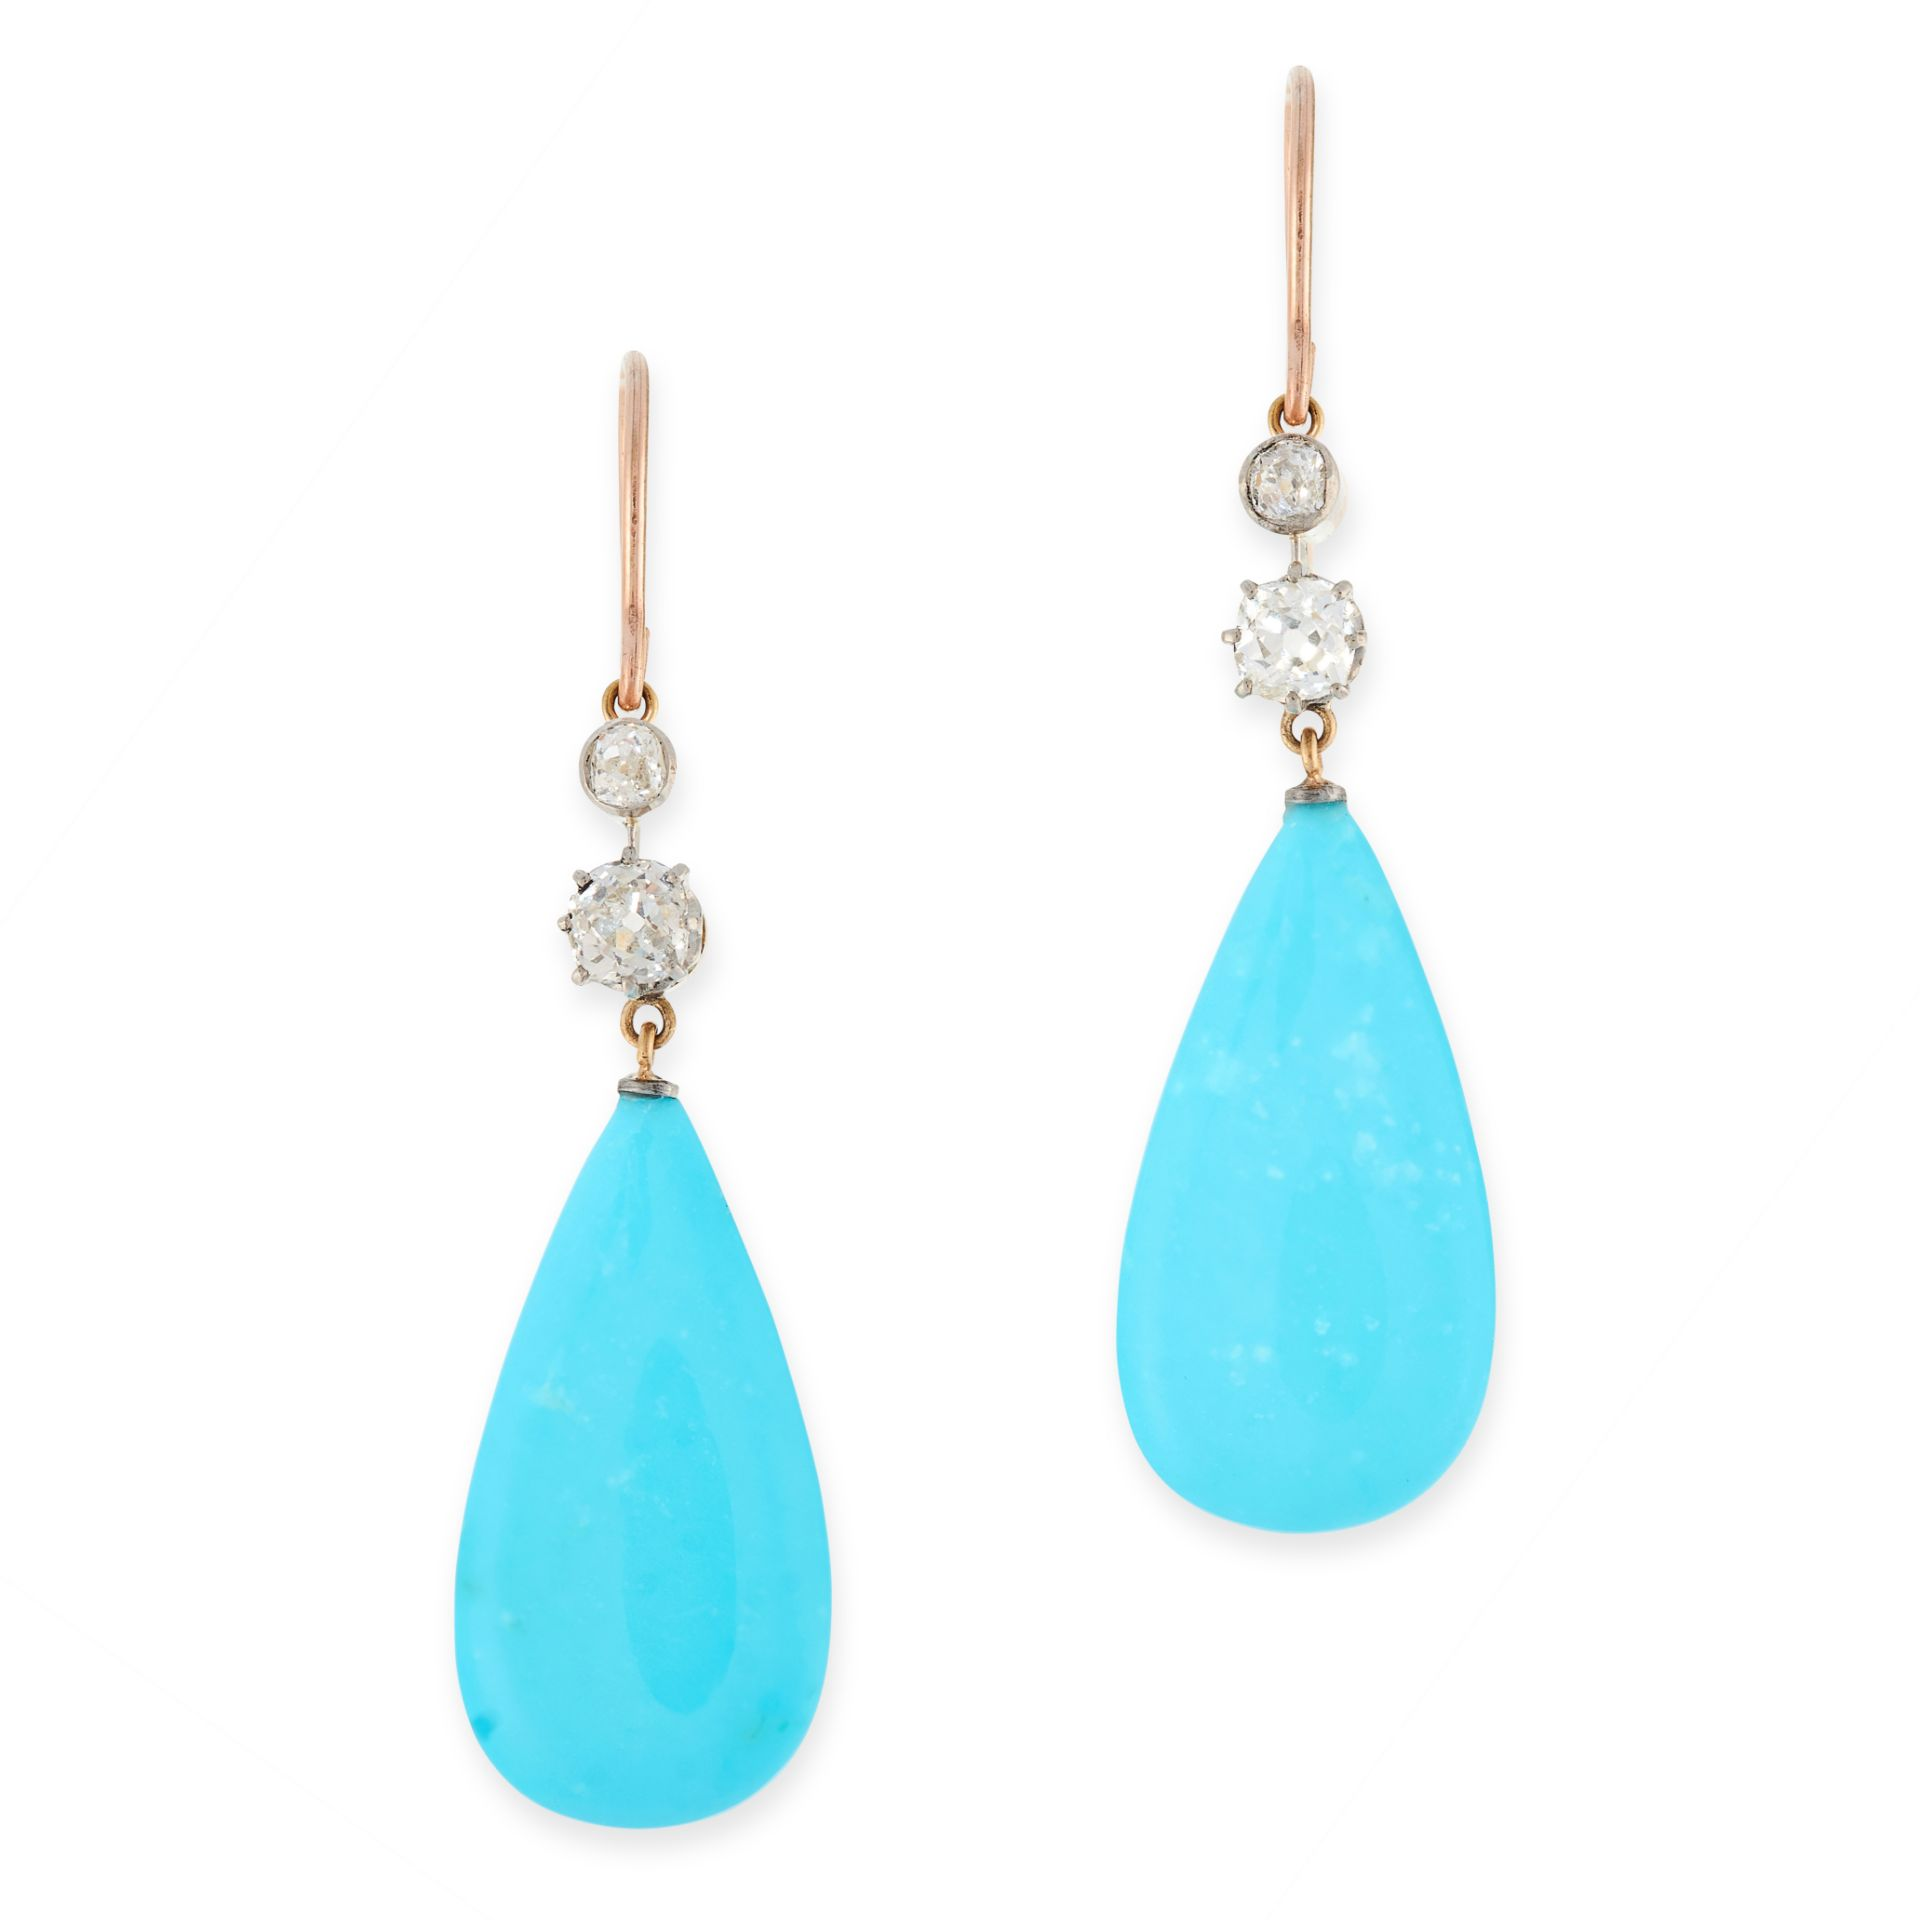 A PAIR OF ANTIQUE TURQUOISE AND DIAMOND EARRINGS in high carat yellow gold, each set with a polished